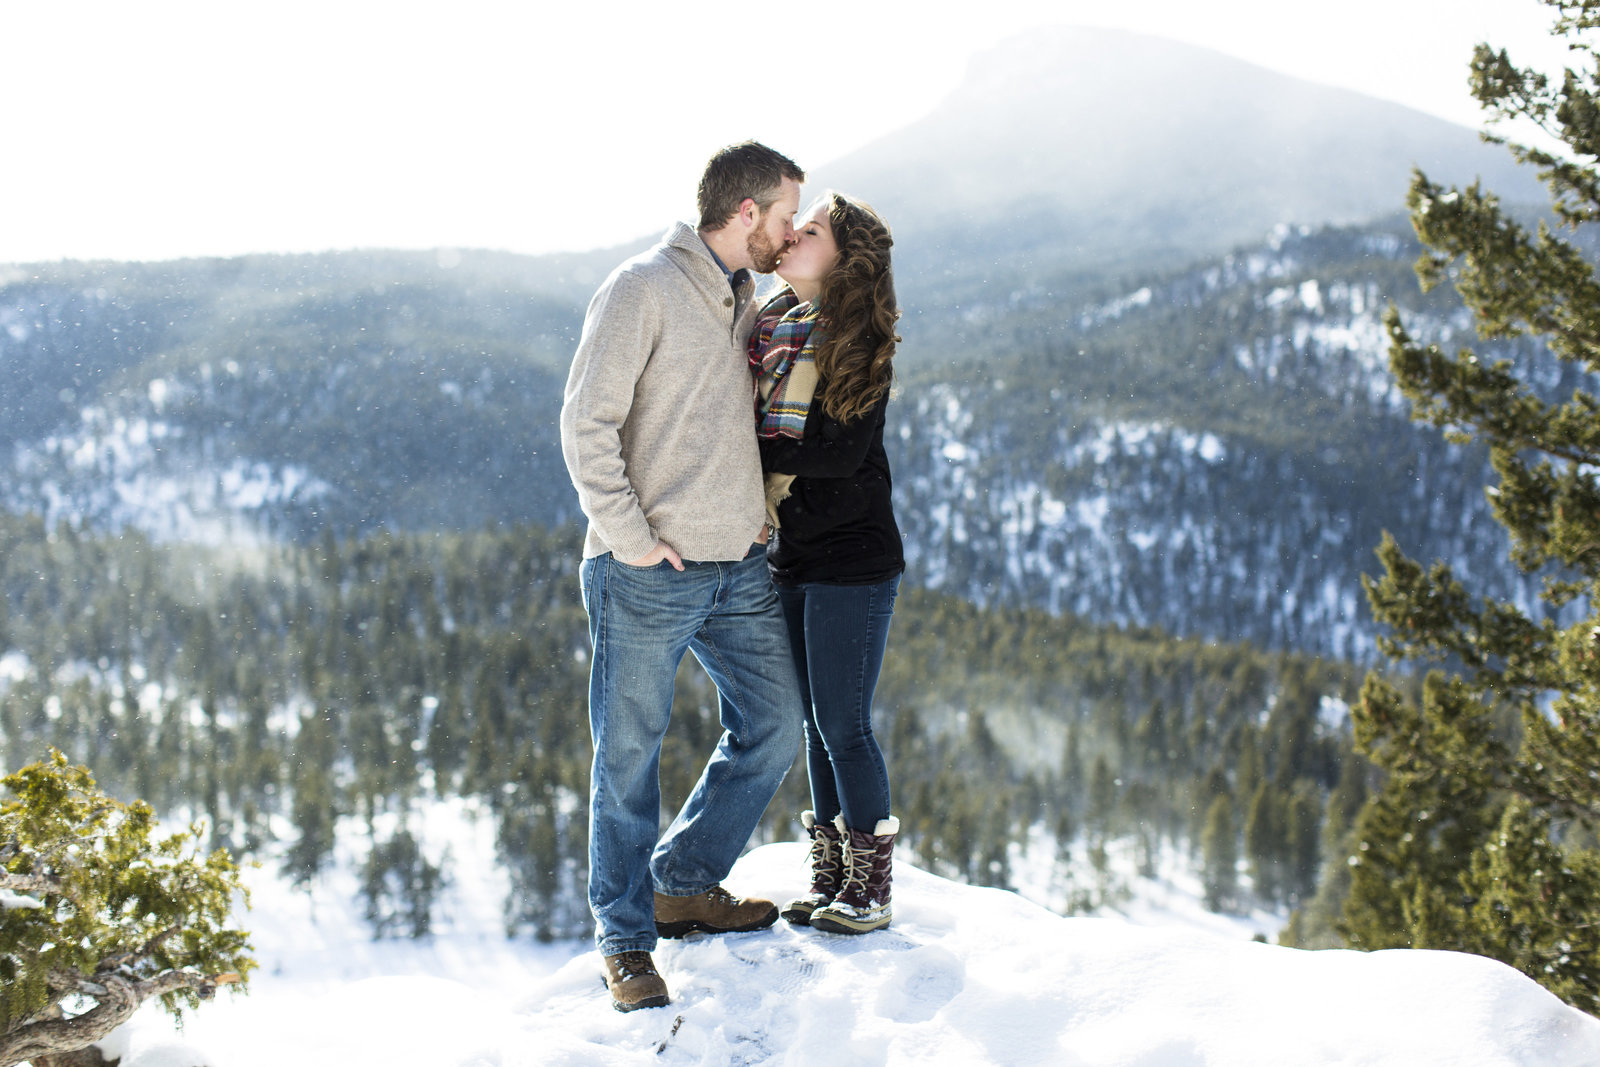 Jessi-And-Zach-Photography-Colorado-Wedding-Photographer-Nevada-Wedding-Photographer-Nevada-Engagement-Photographer_10